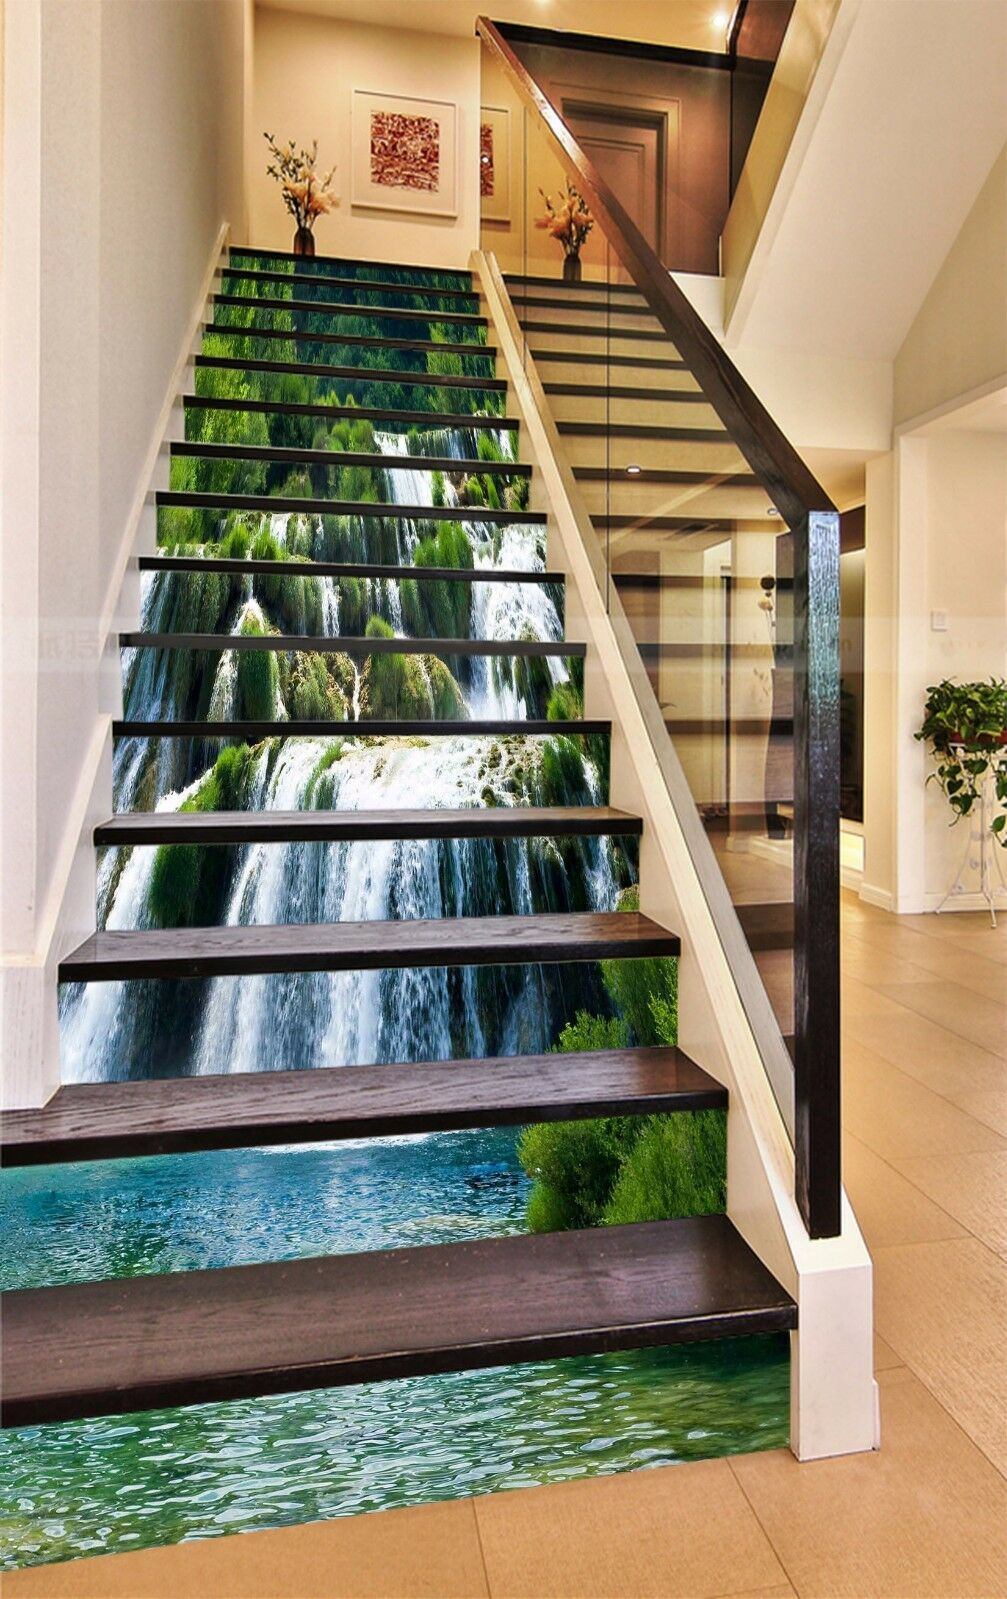 3D Waterfall Tree 8Stair Risers Decoration Photo Mural Vinyl Decal Wallpaper AU